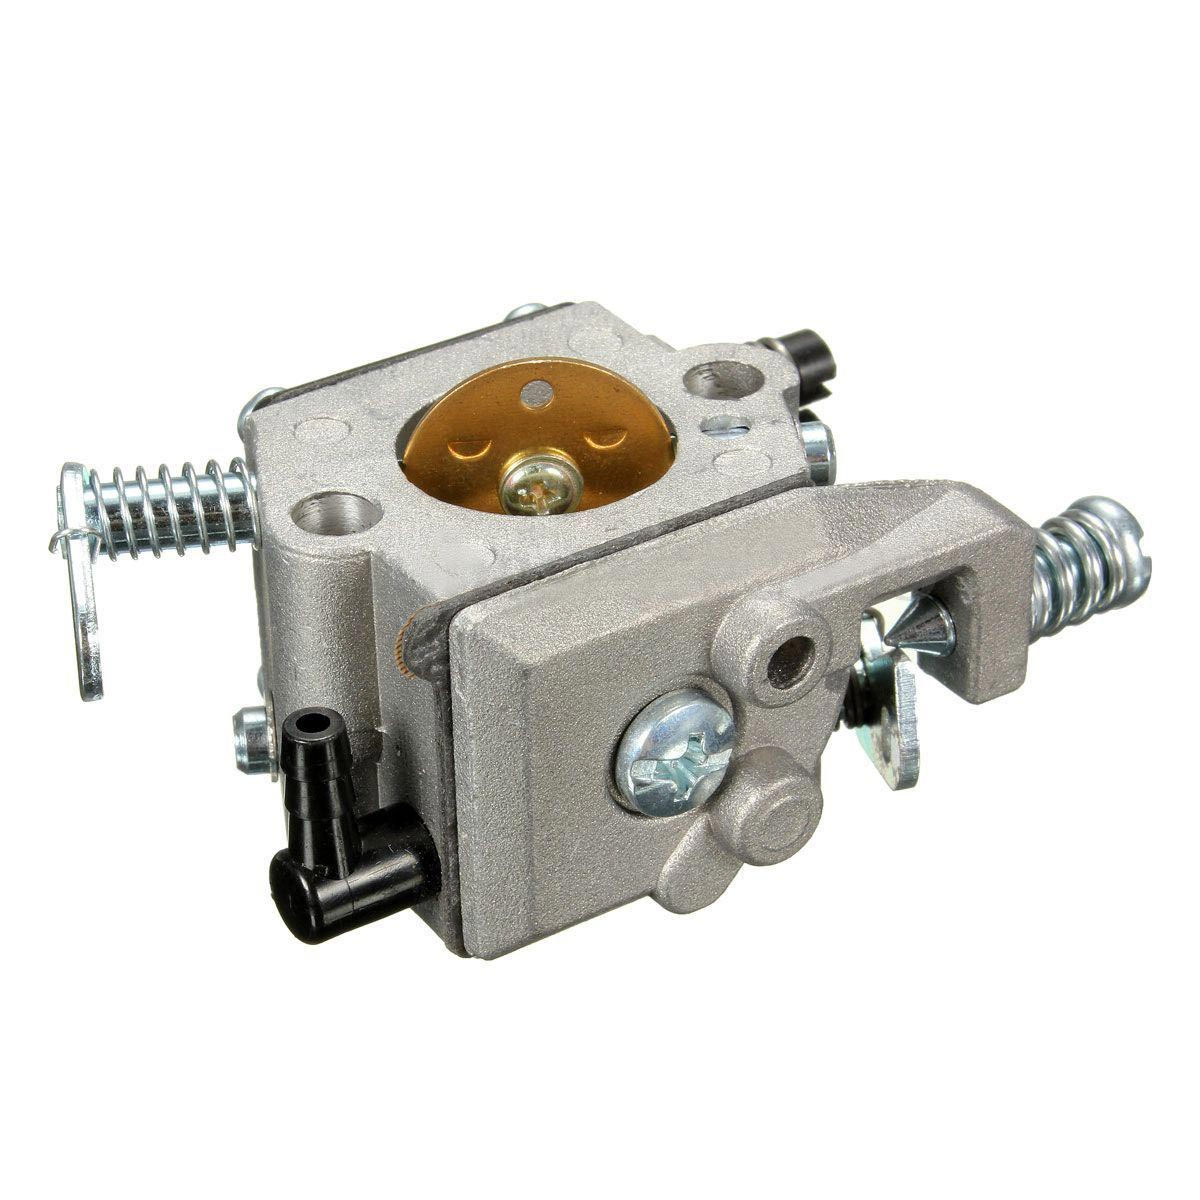 Carburetor Carb For Type 021 023 025 MS210 MS230 MS250 Trimmer Chainsaw